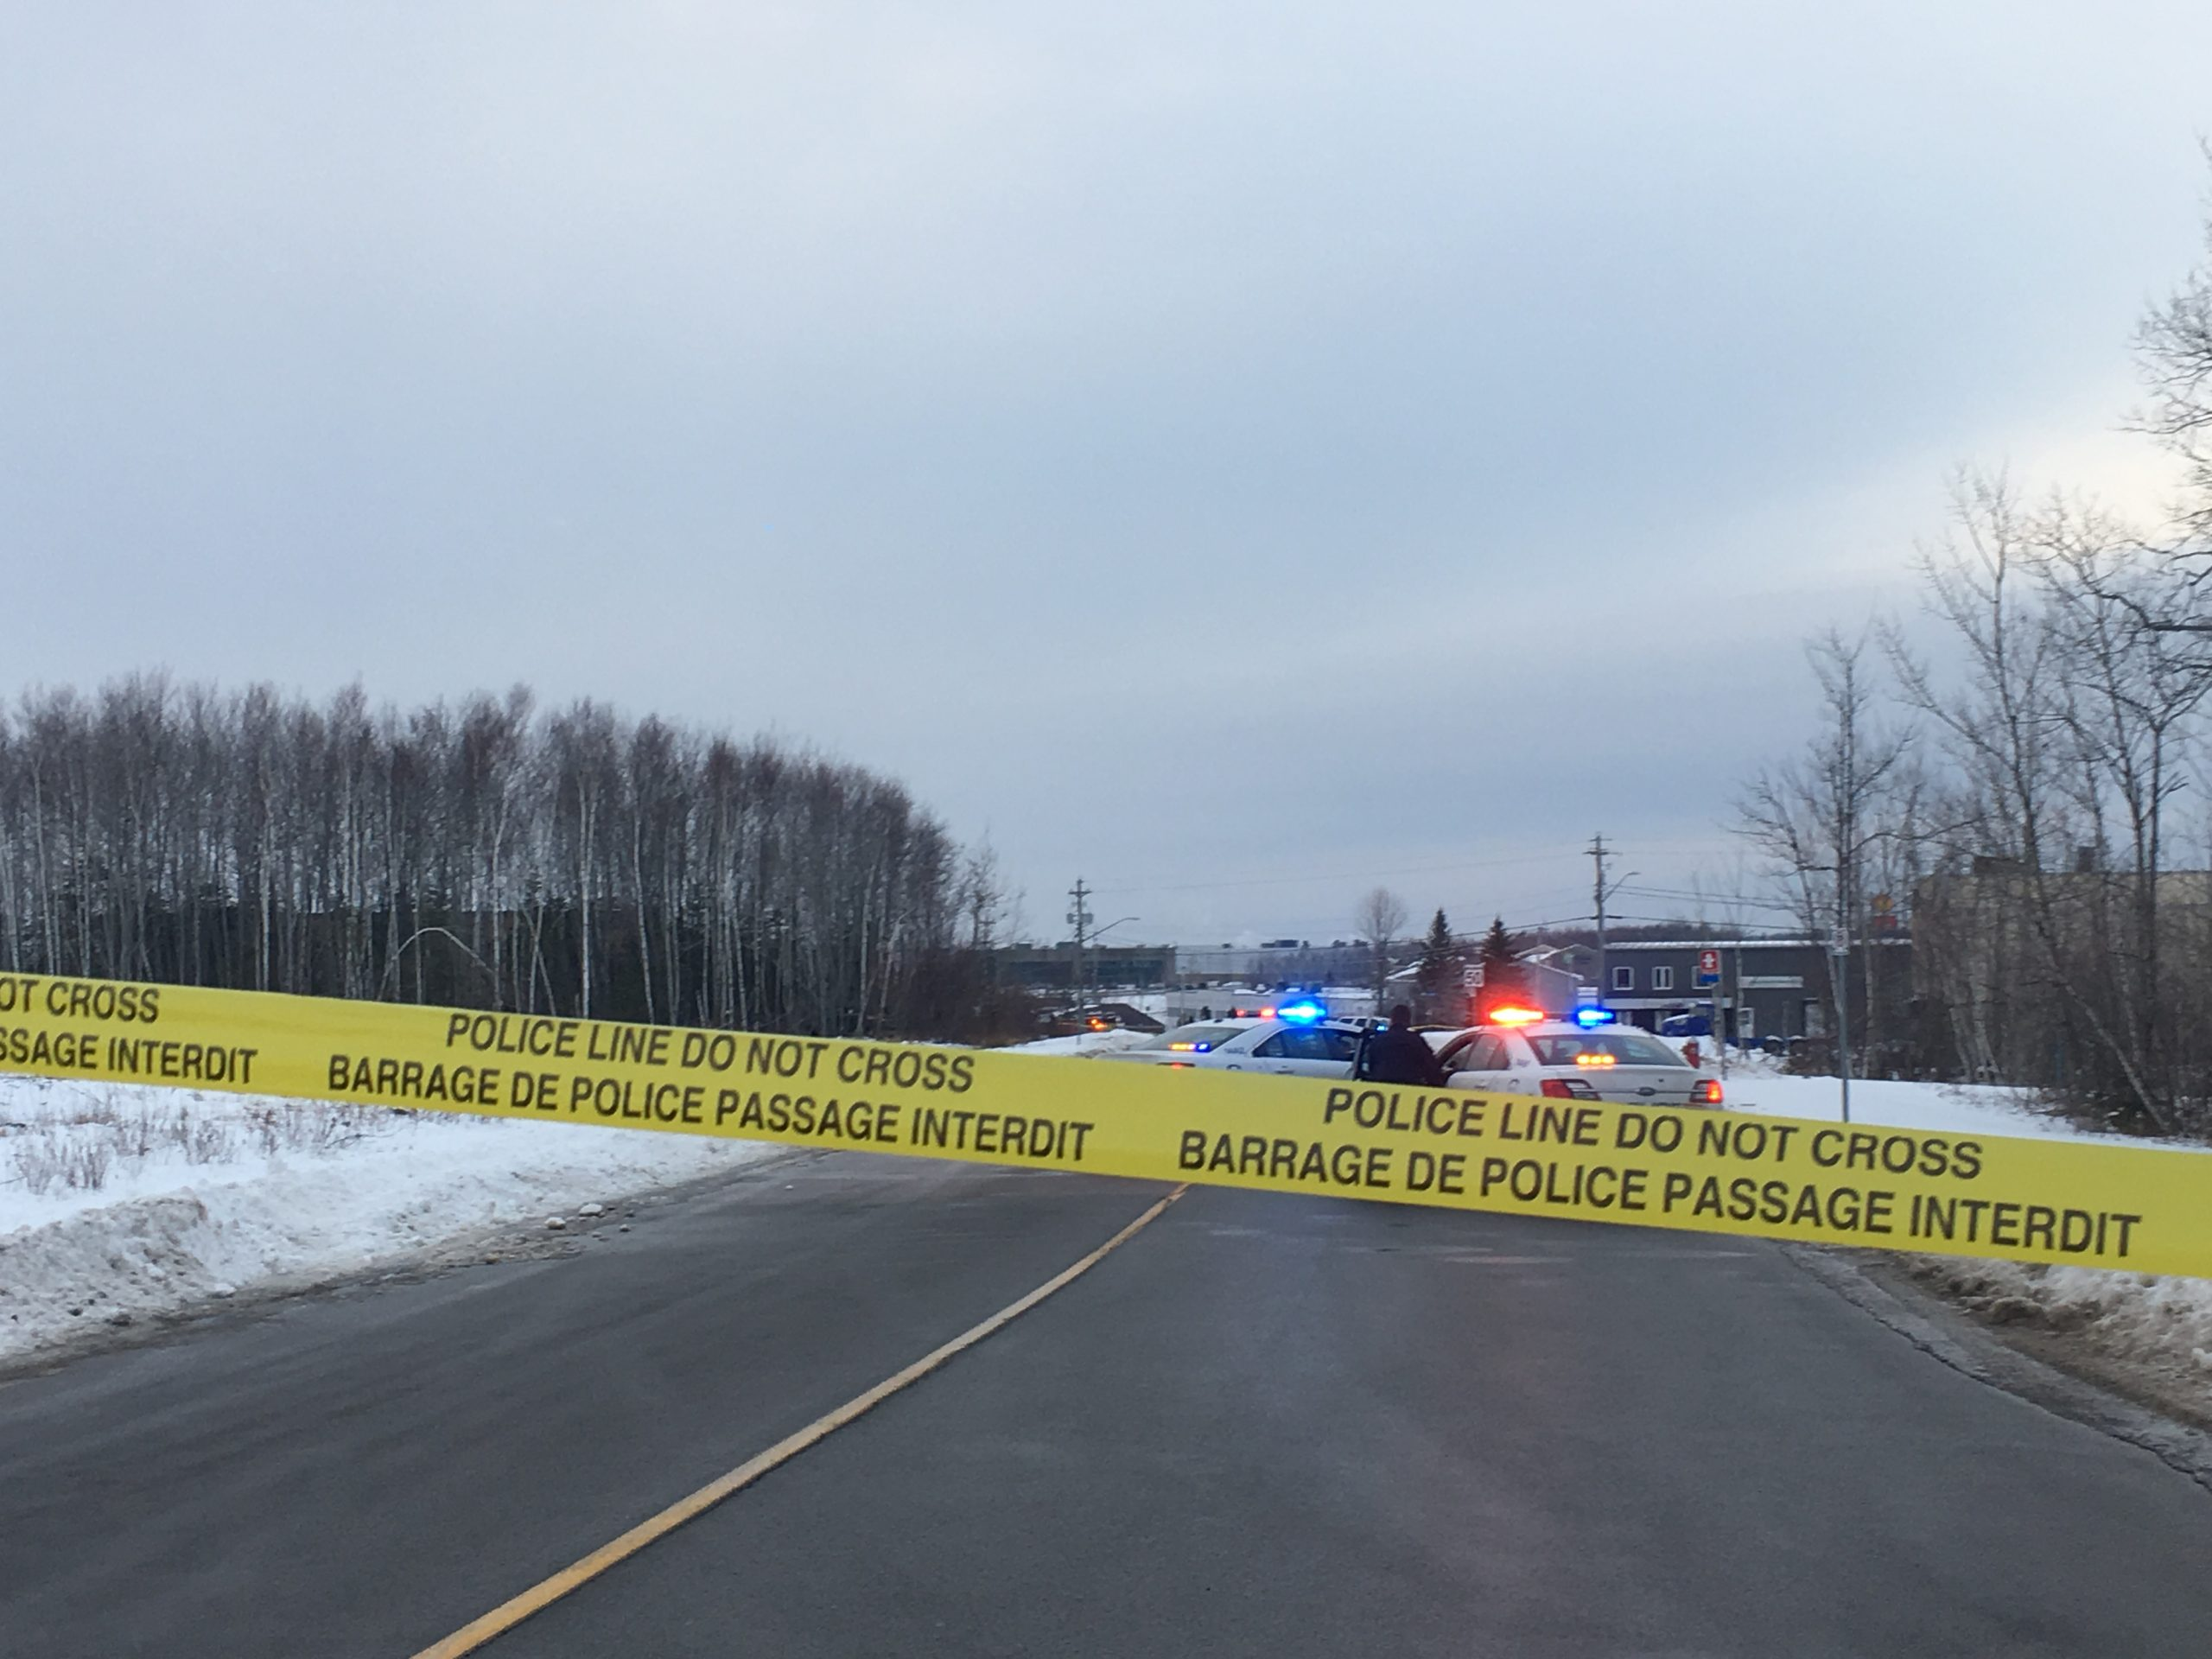 RCMP Officer Fired Weapon At Suspect In Saturday's Shooting In Dieppe